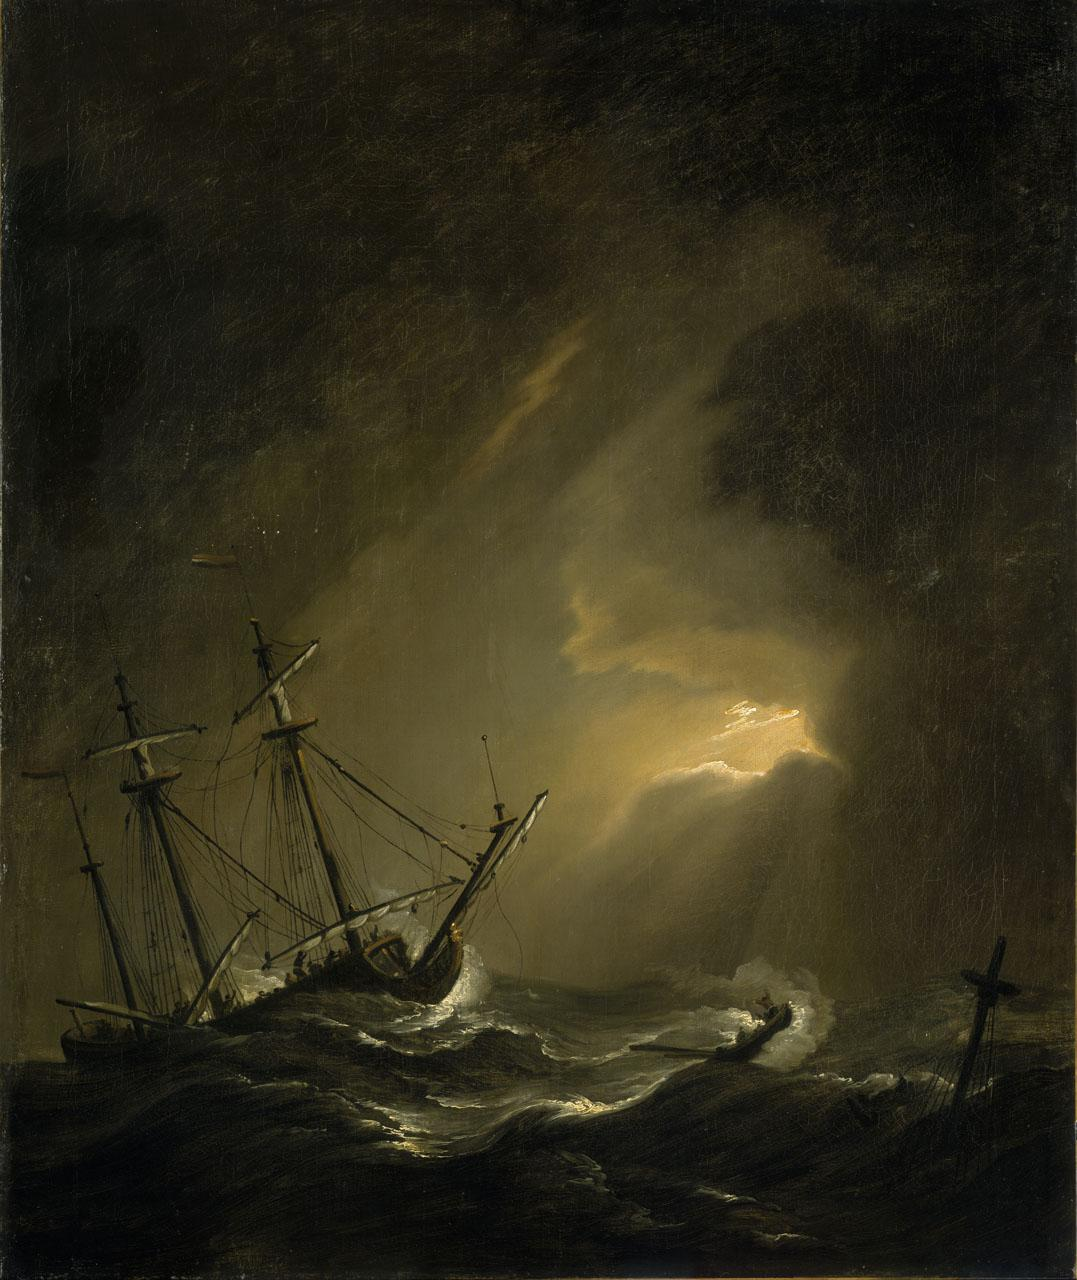 An image showing 'Two English Ships Wrecked in a Storm on a Rocky Coast'